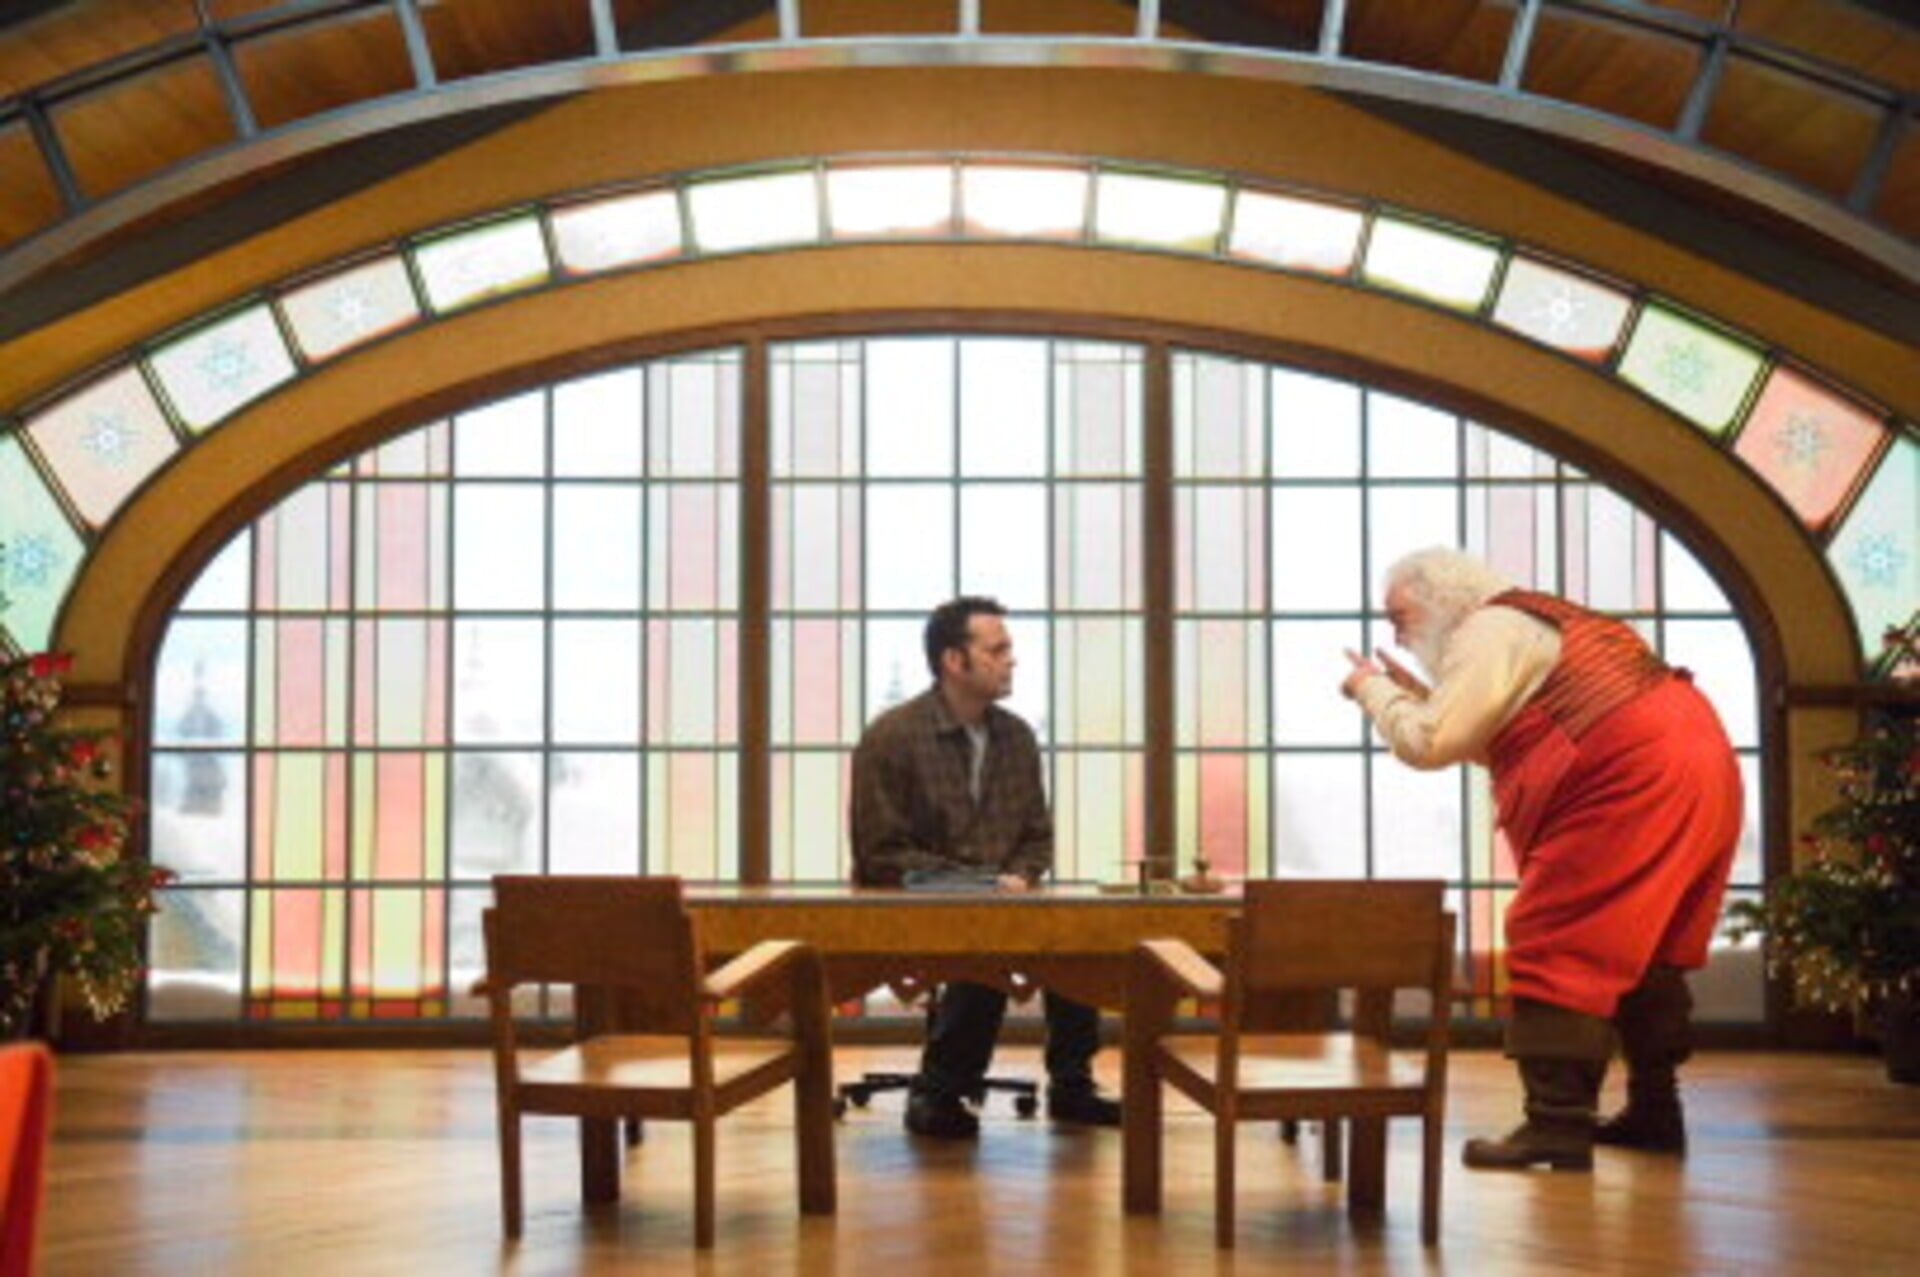 Fred Claus - Image 23